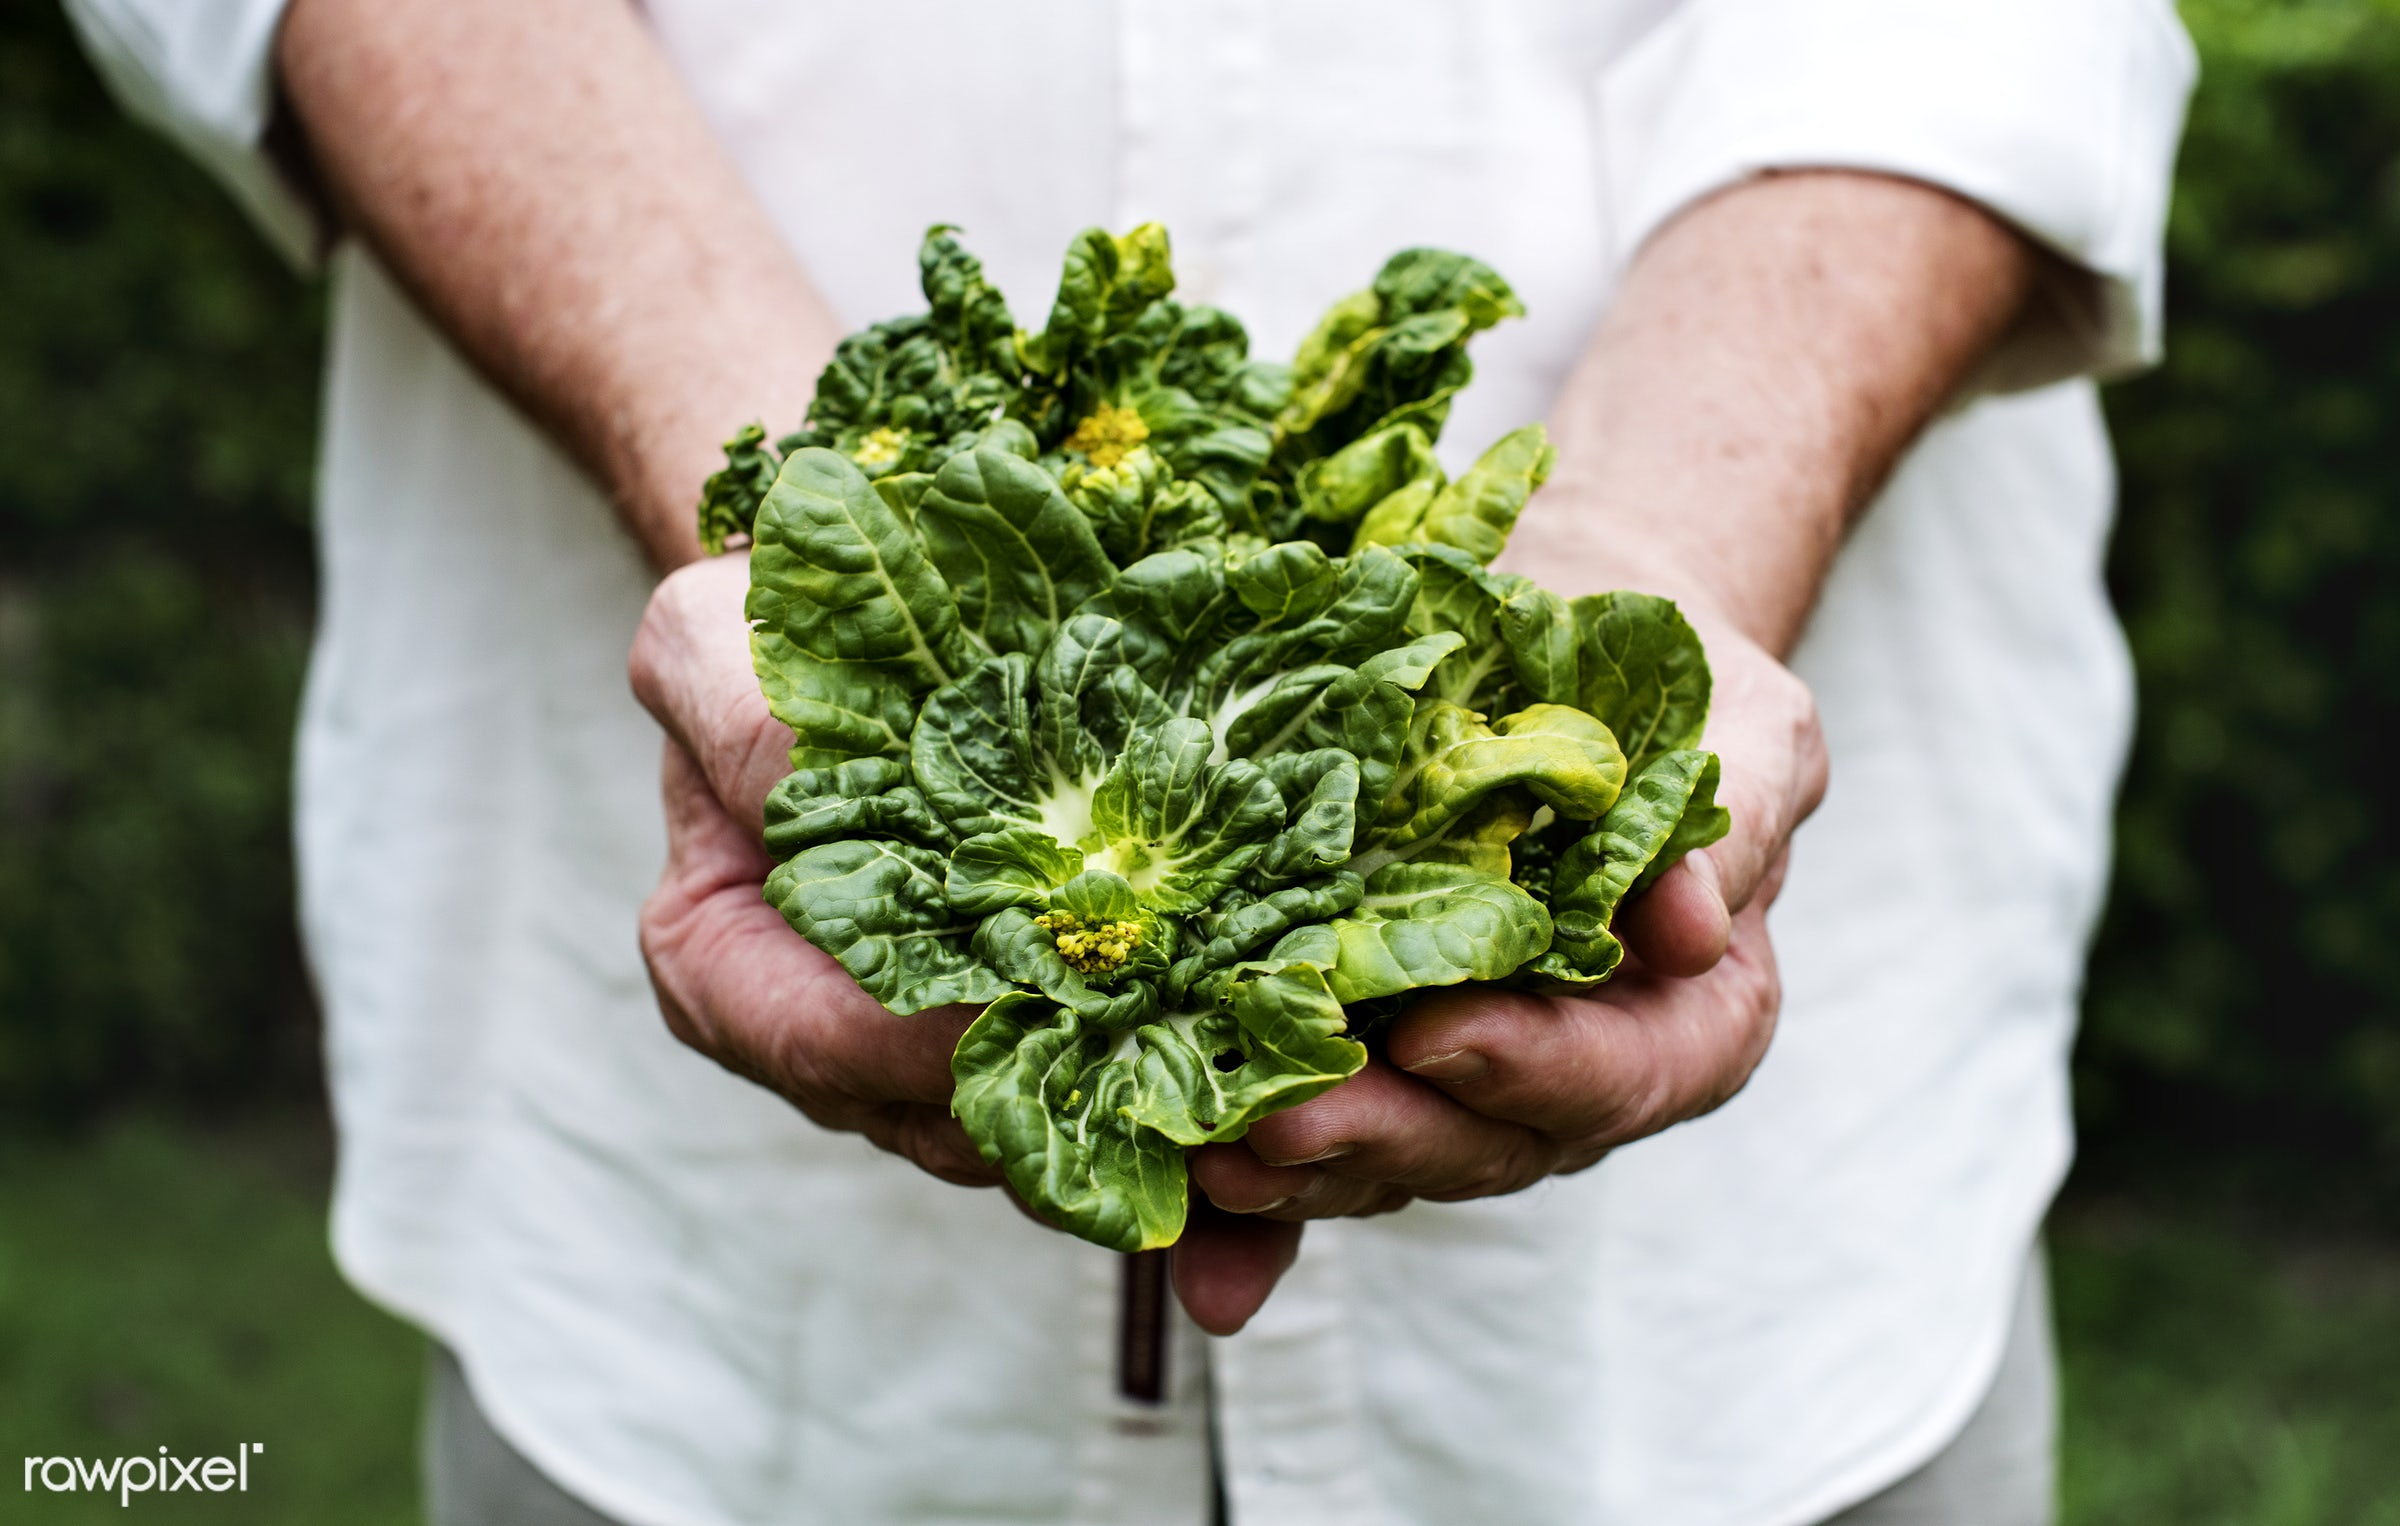 Hands holding kale organic produce from farm - raw, holding, nature, hands, fresh, closeup, organic, kale, healthy, harvest...